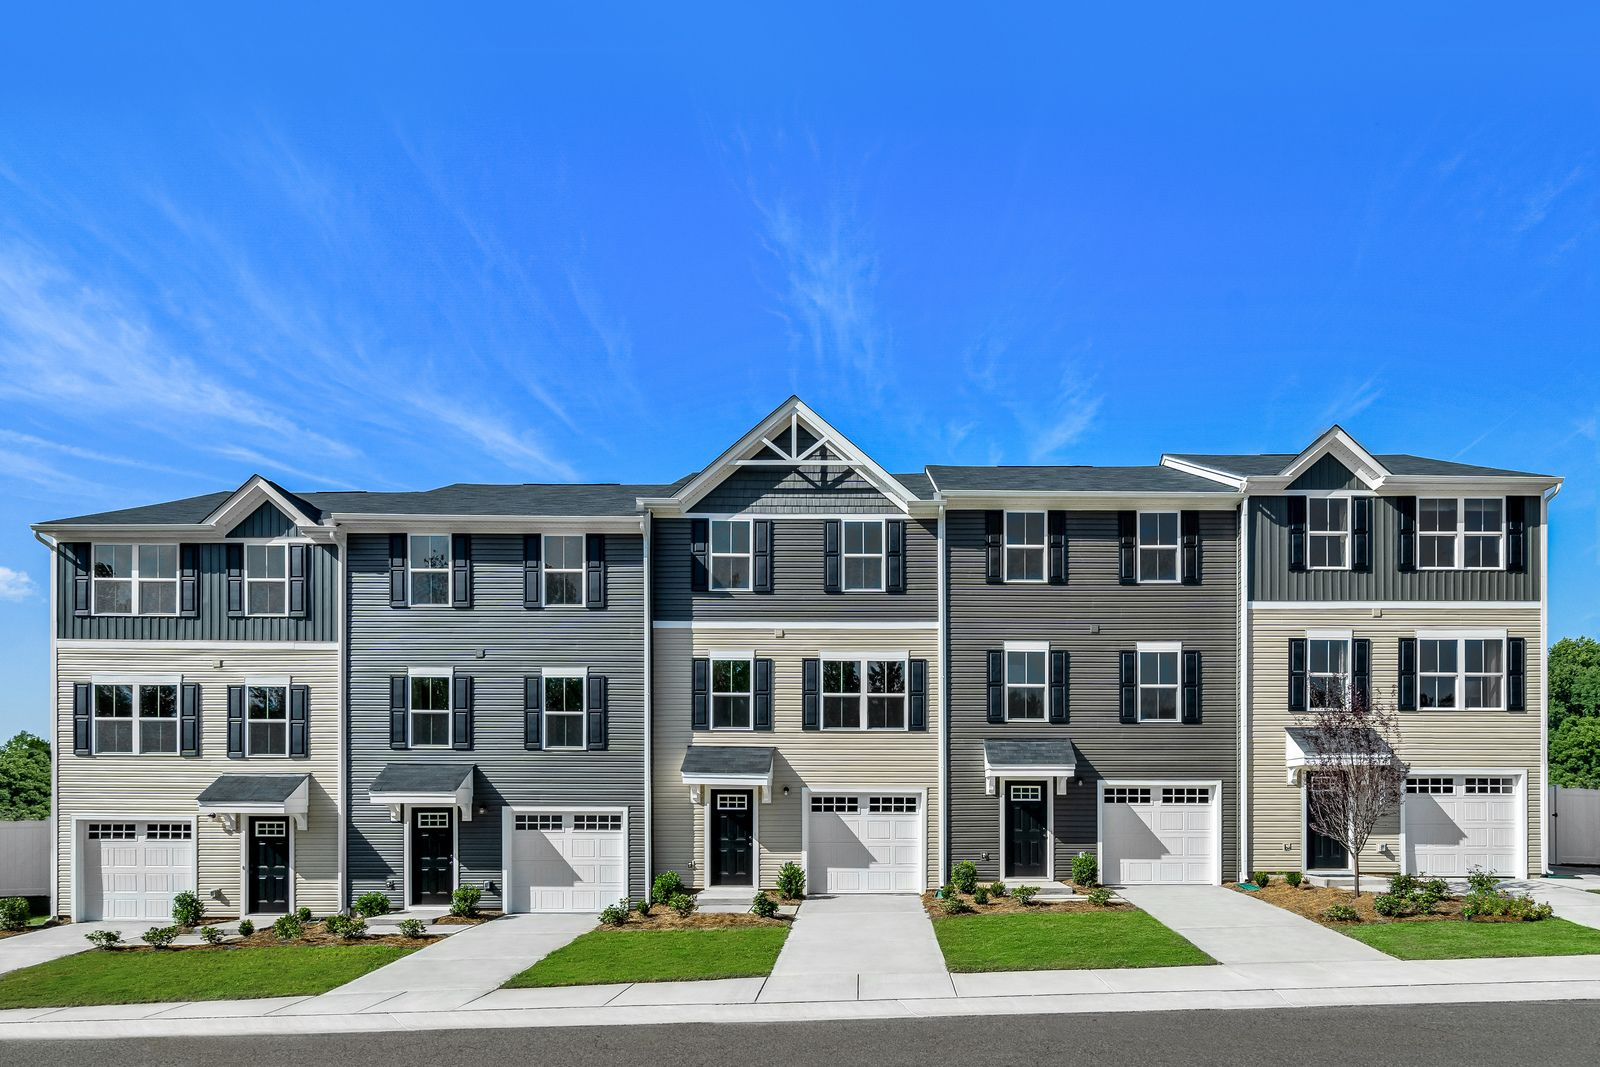 Own a new townhome for the same or less than rent!:Schedule a visitto learn more about how you can own with little money down and low monthly payments, allwithin 5 miles of Uptown Charlotte!